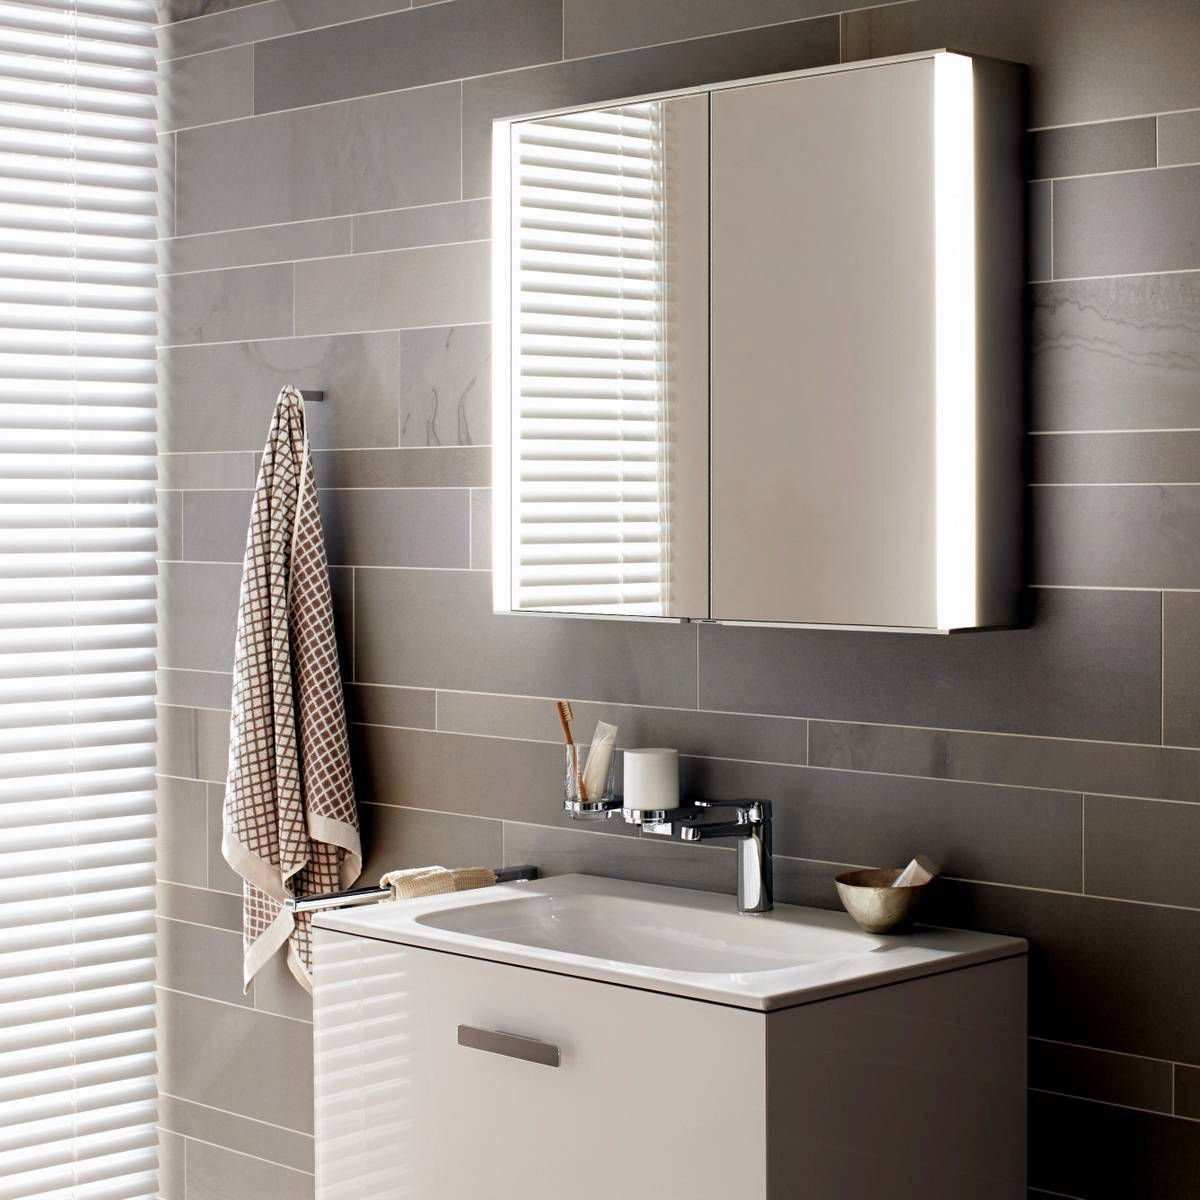 keuco royal match mirror cabinet - Bathroom Cabinets Keuco